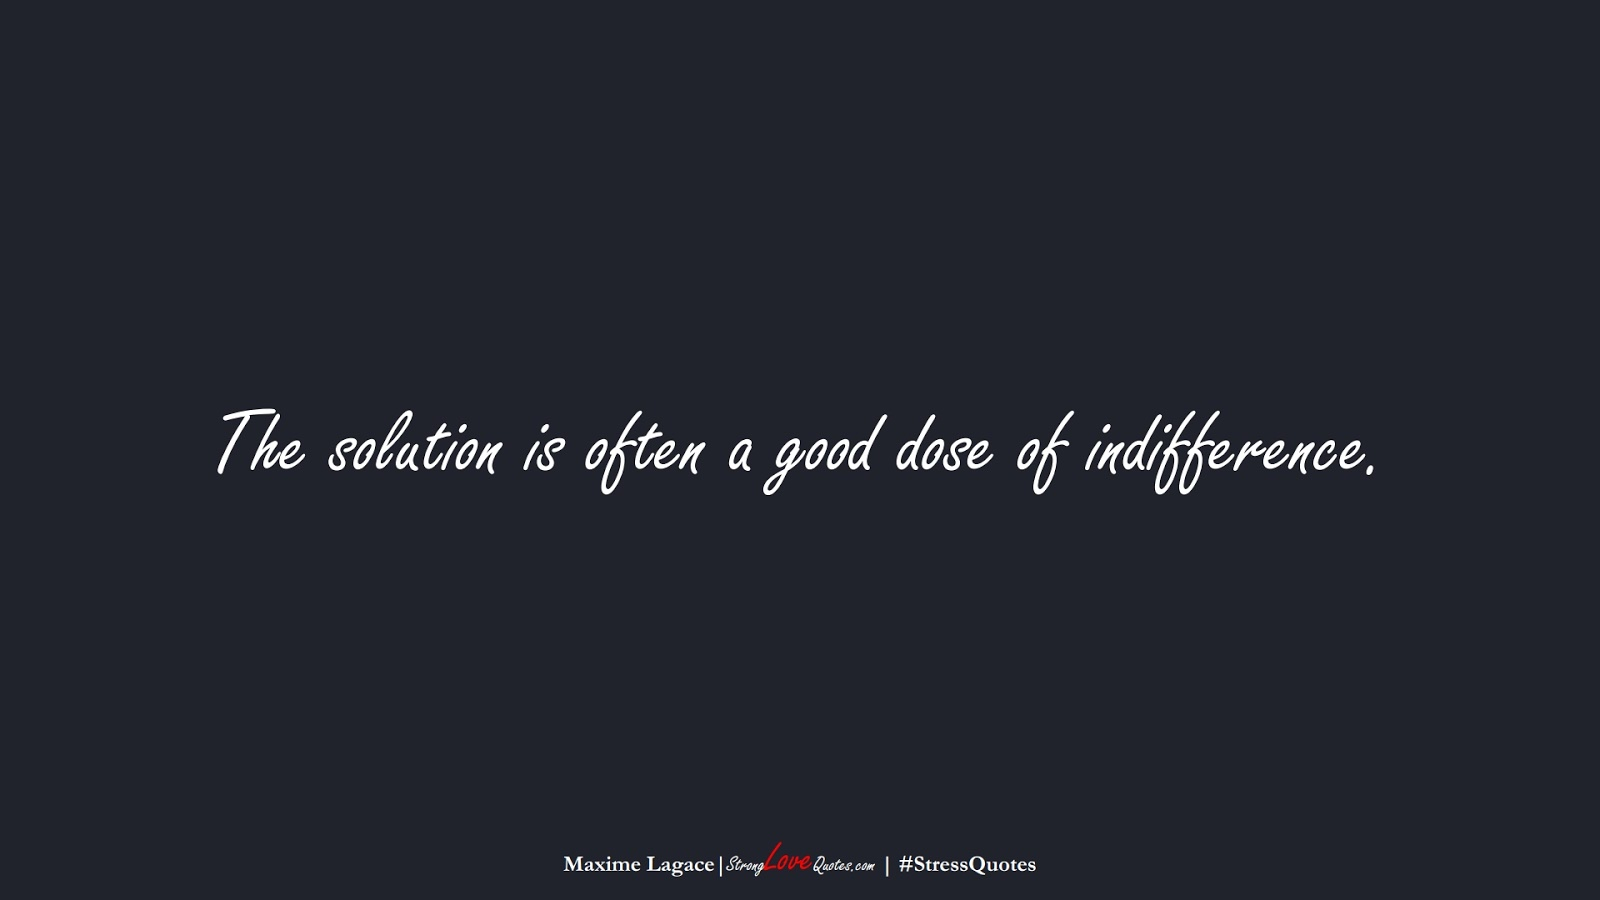 The solution is often a good dose of indifference. (Maxime Lagace);  #StressQuotes